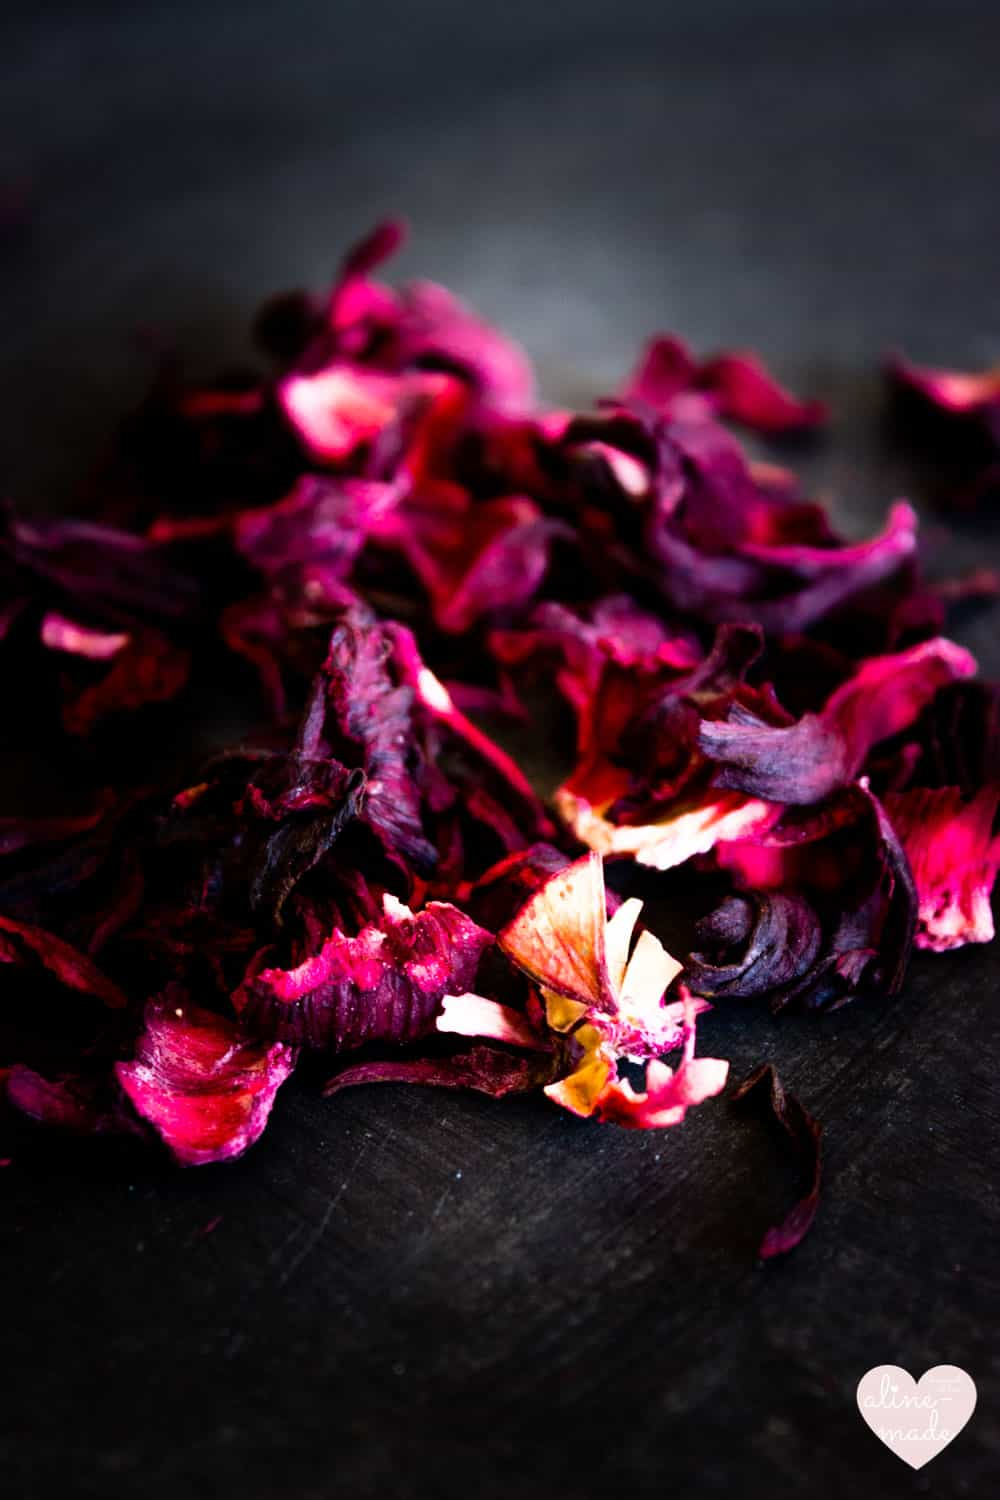 Flor de Jamaica - Dried Hibiscus Flowers   Have an intense pink color & are very beautiful!